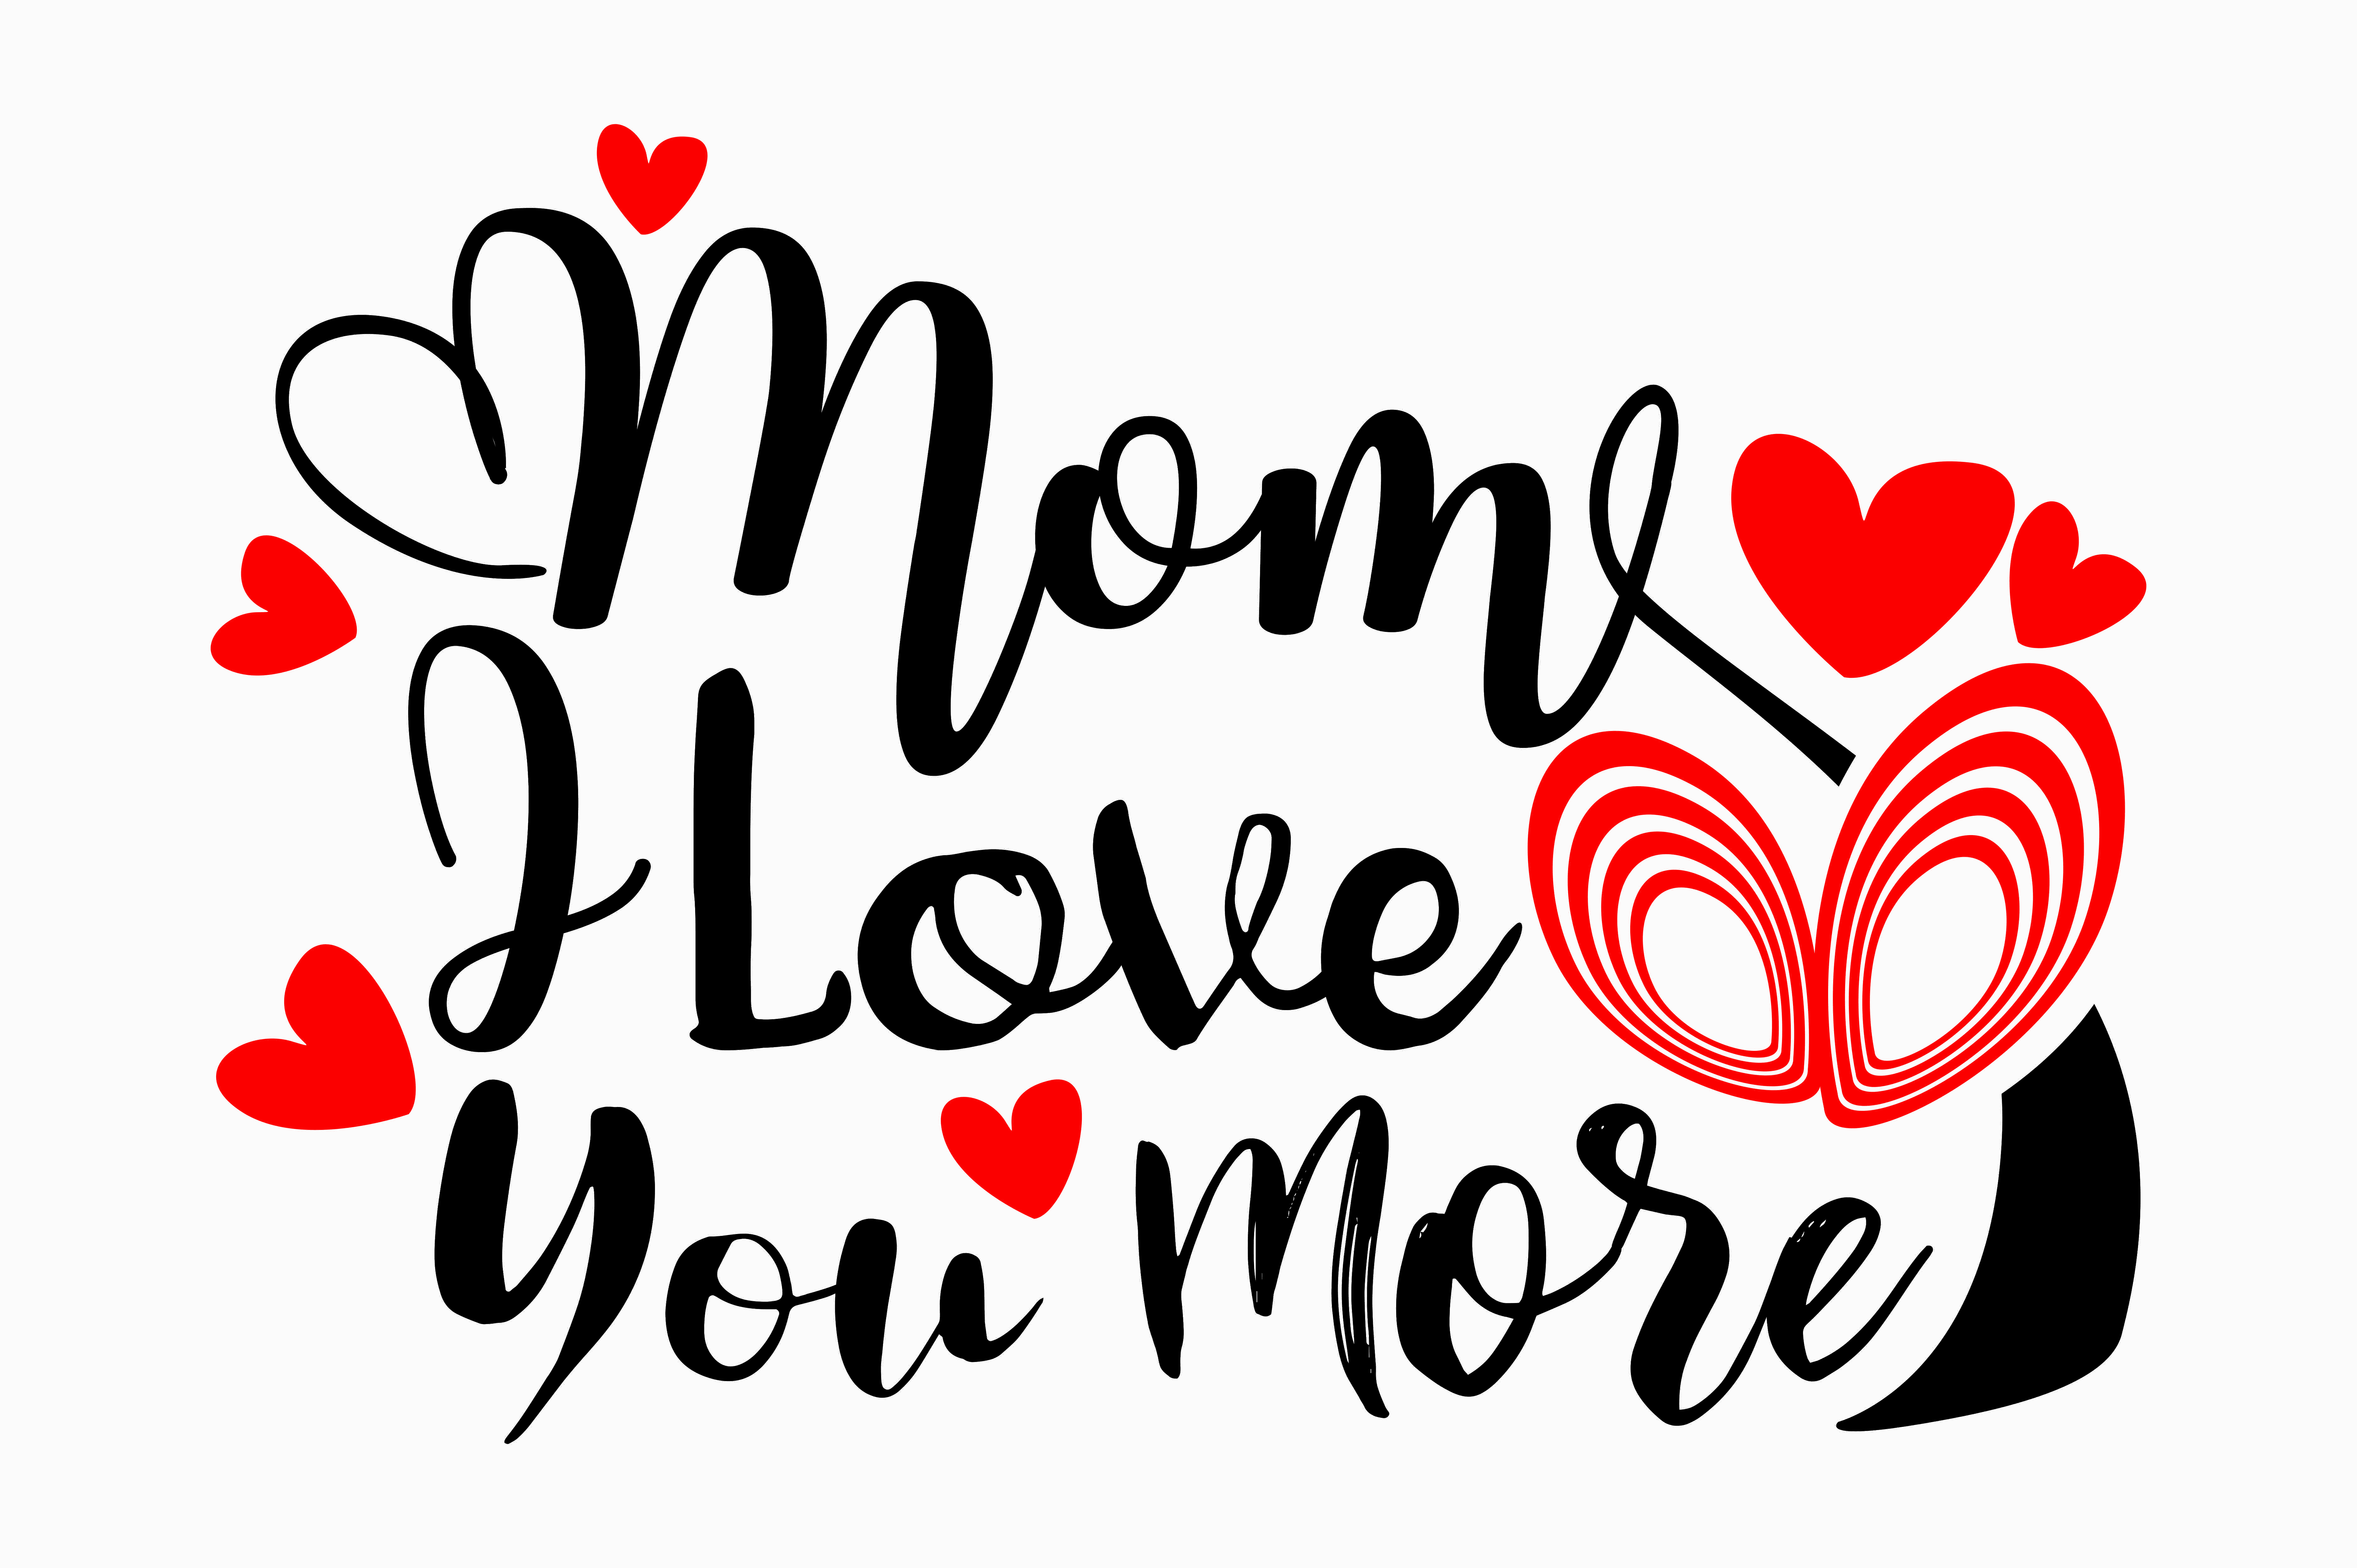 Download Free Mom Graphic By Arief Sapta Adjie Creative Fabrica for Cricut Explore, Silhouette and other cutting machines.